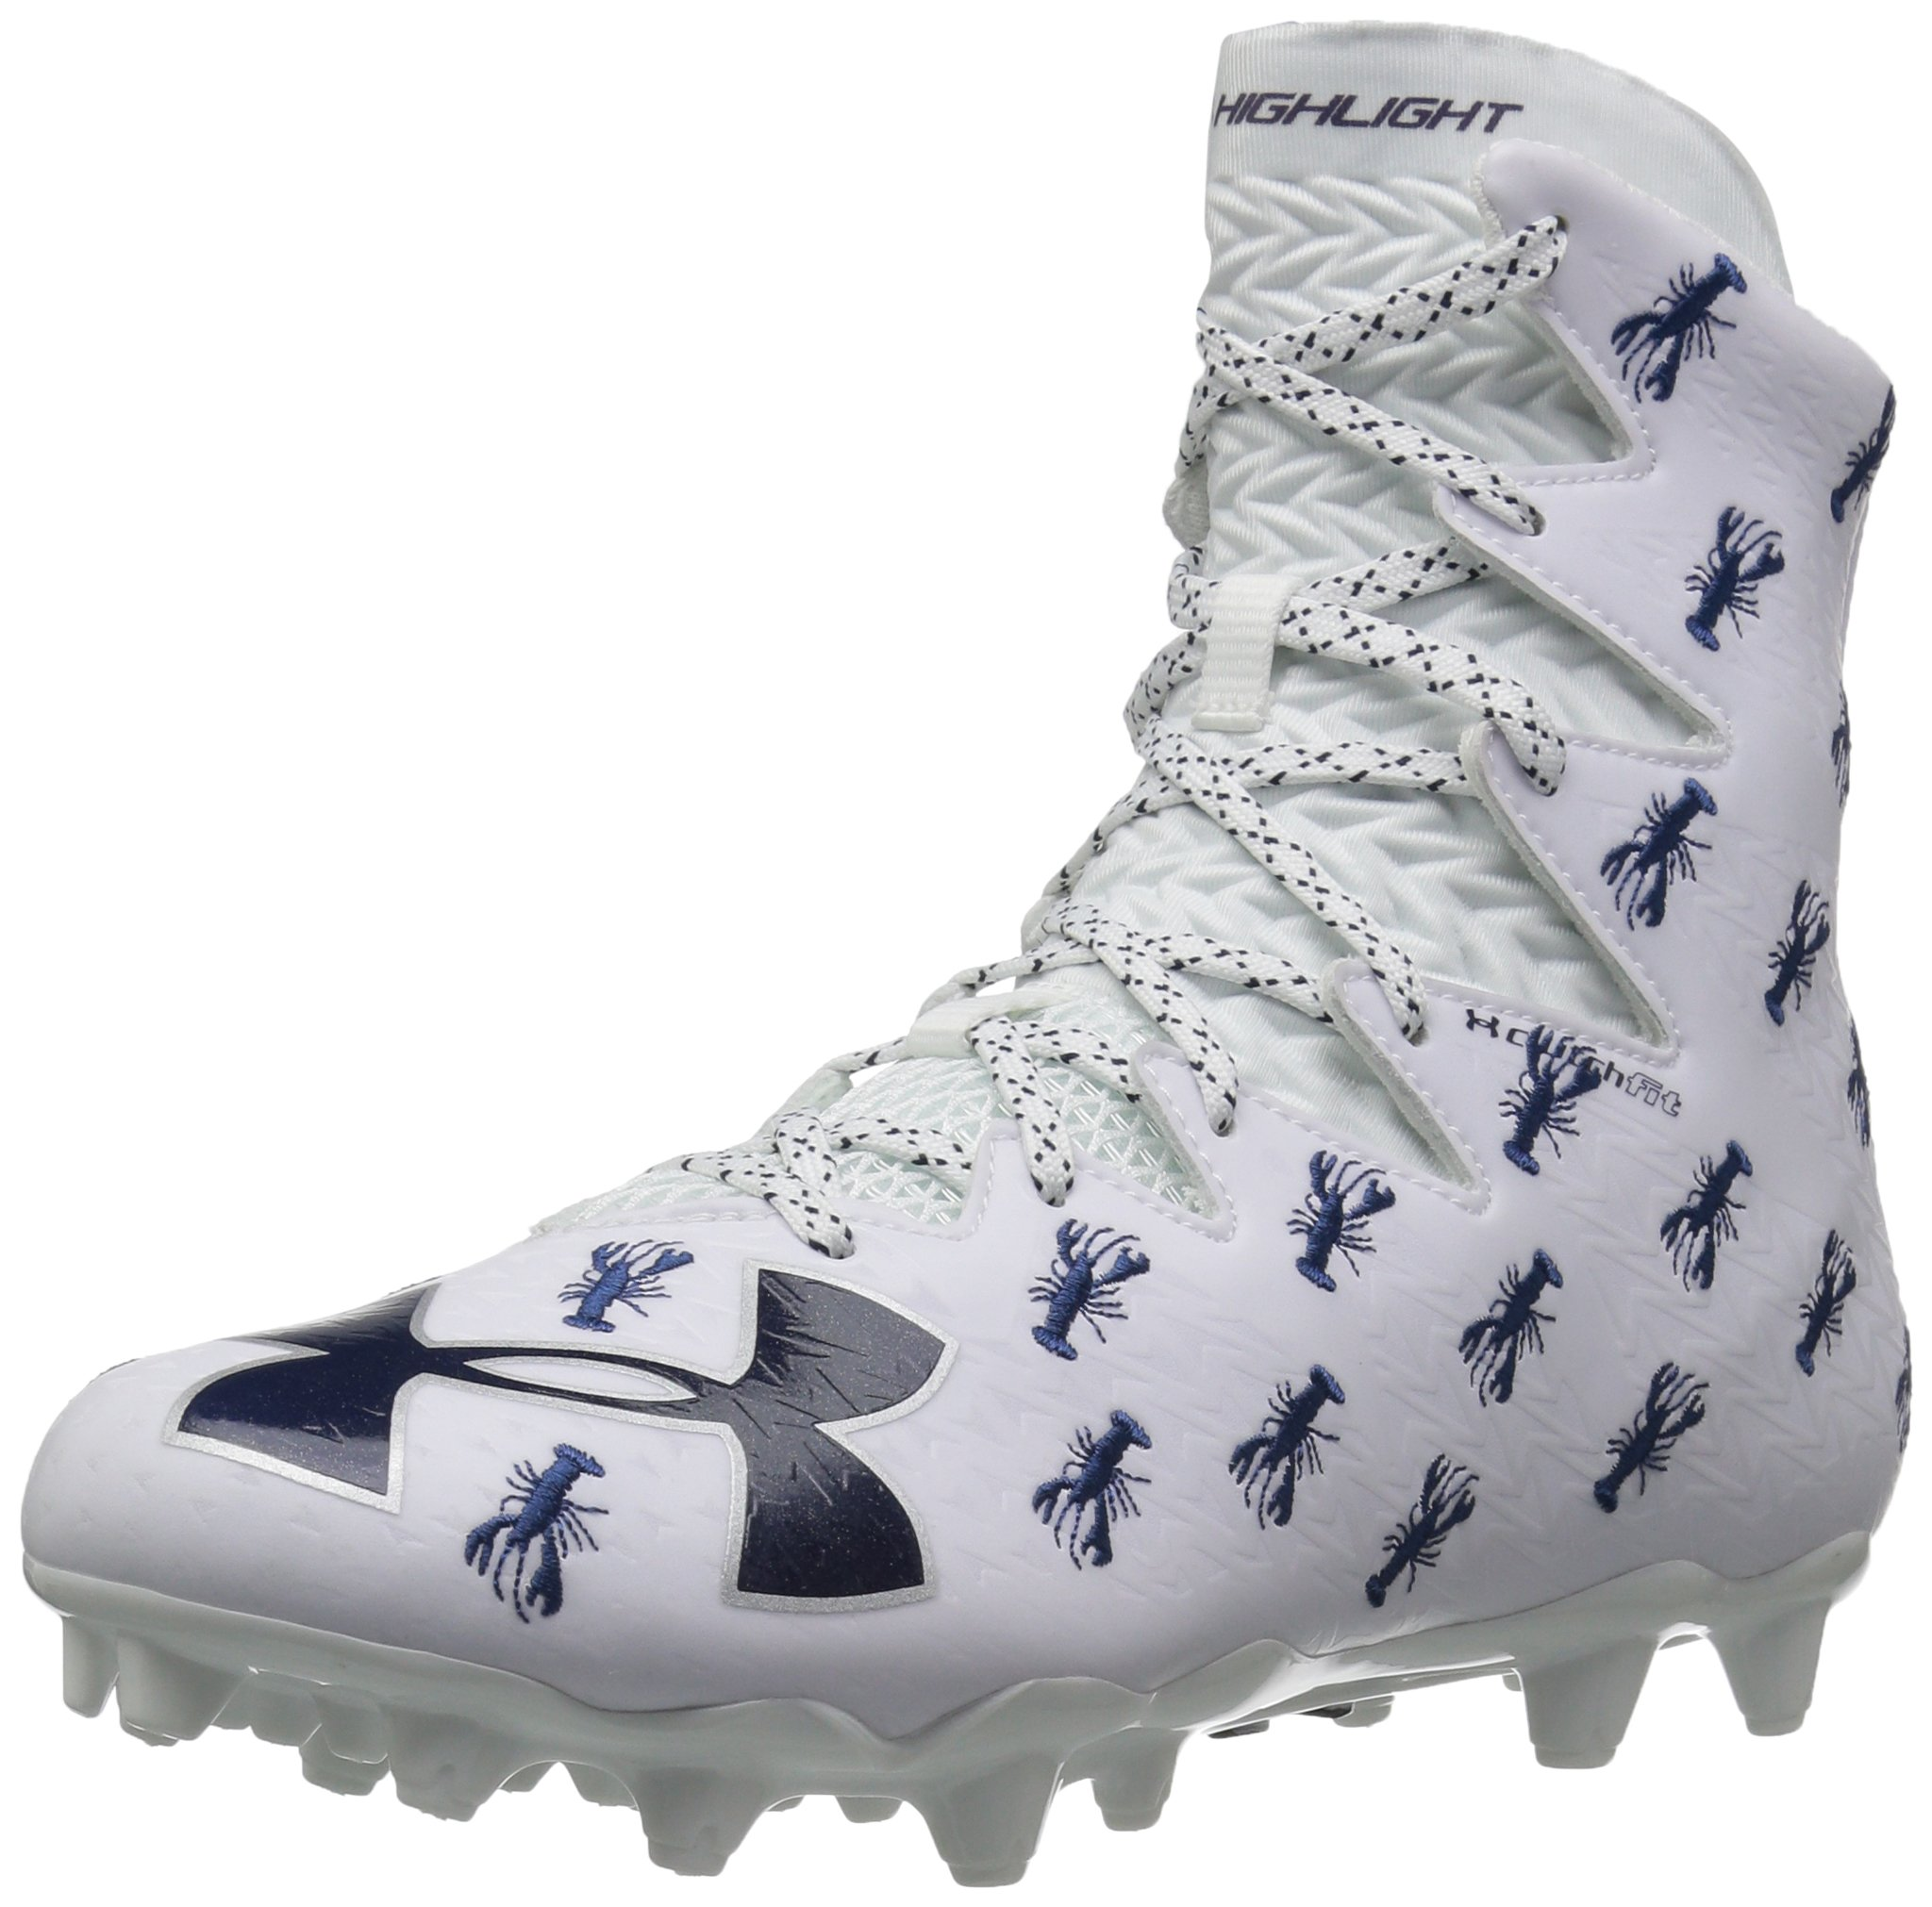 Under Armour Men's Highlight M.C. -Limited Edition Lacrosse Shoe, White (101)/Midnight Navy, 11.5